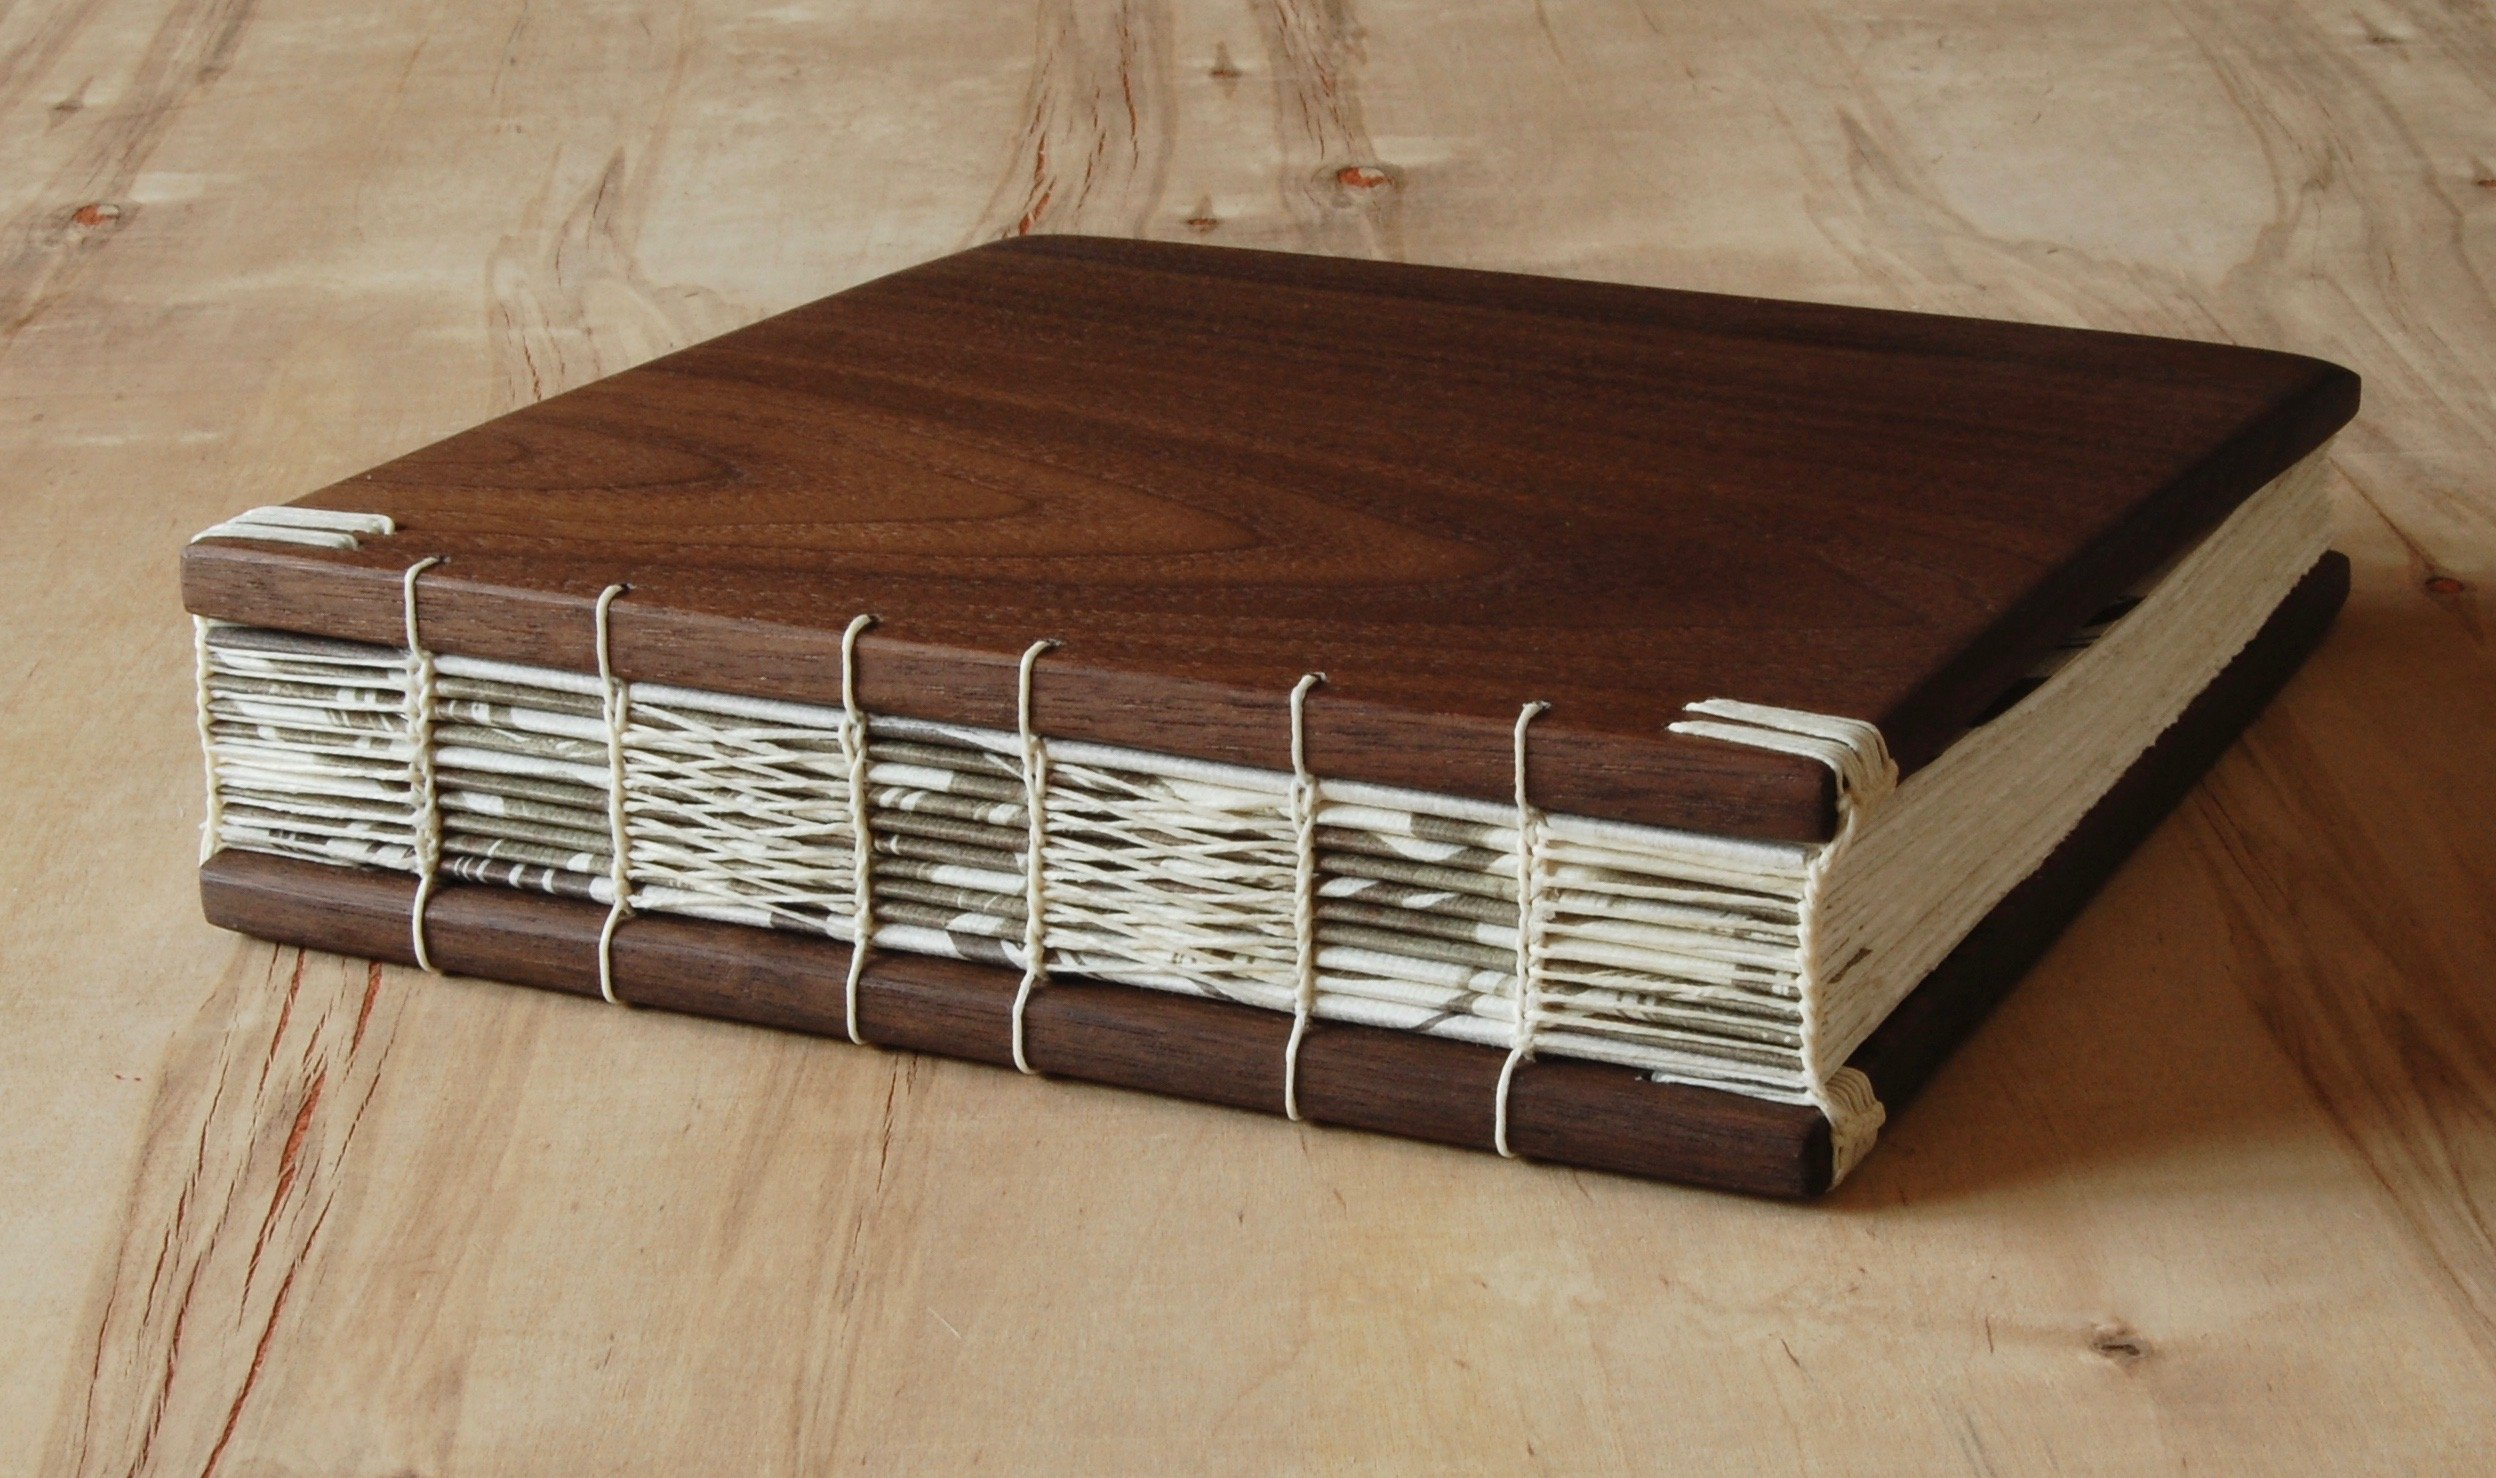 Handmade Wedding Guest Book or Vacation Home Guestbook - Black Walnut Wood